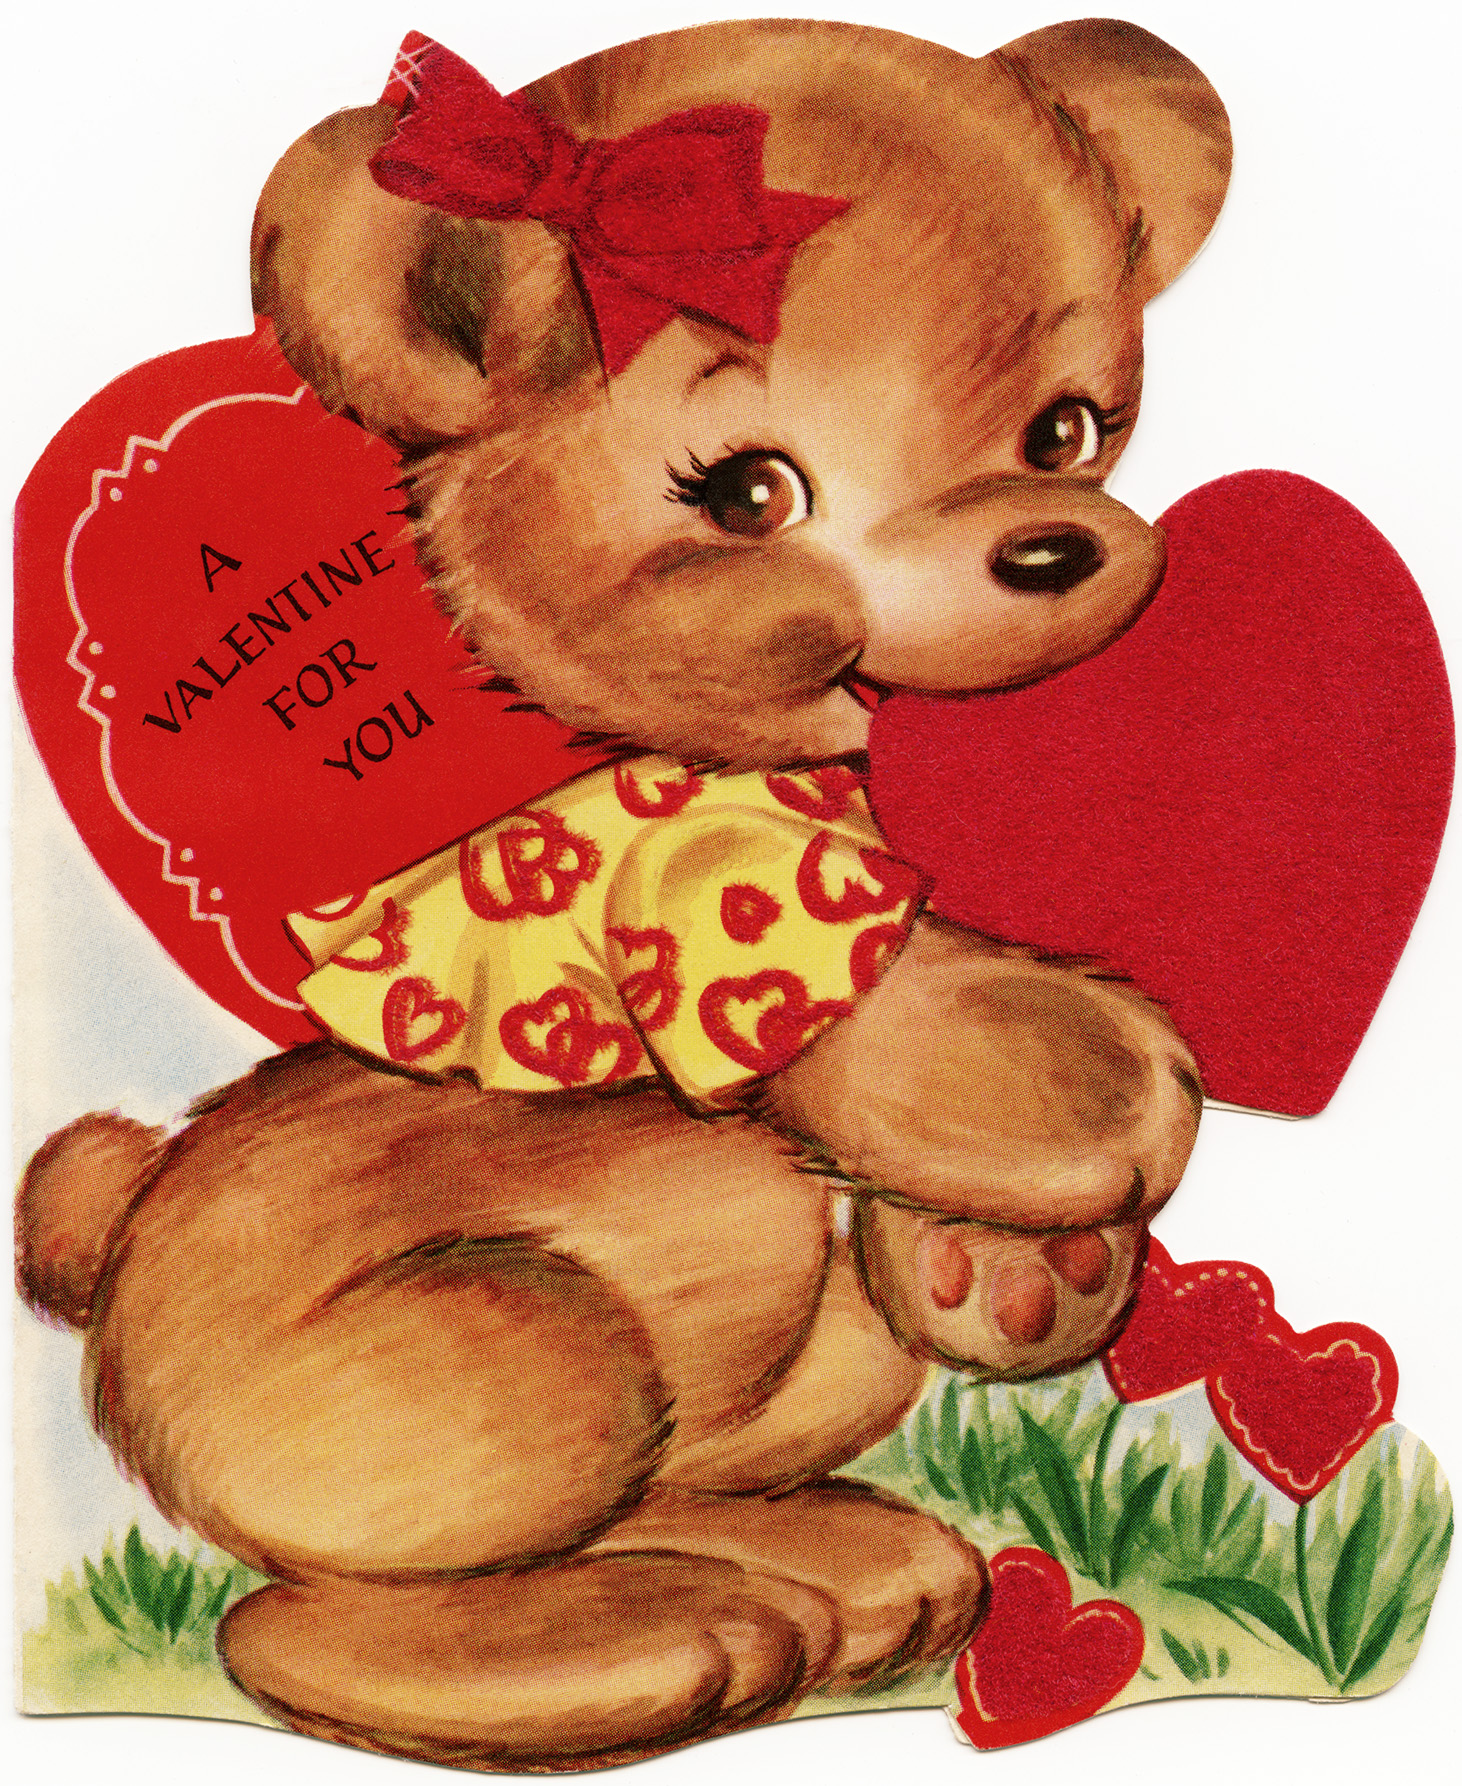 ... Vintage Valentine, Old Fashioned Childrenu0027s Valentine Card, Little Bear  Valentine, Royalty Free Retro